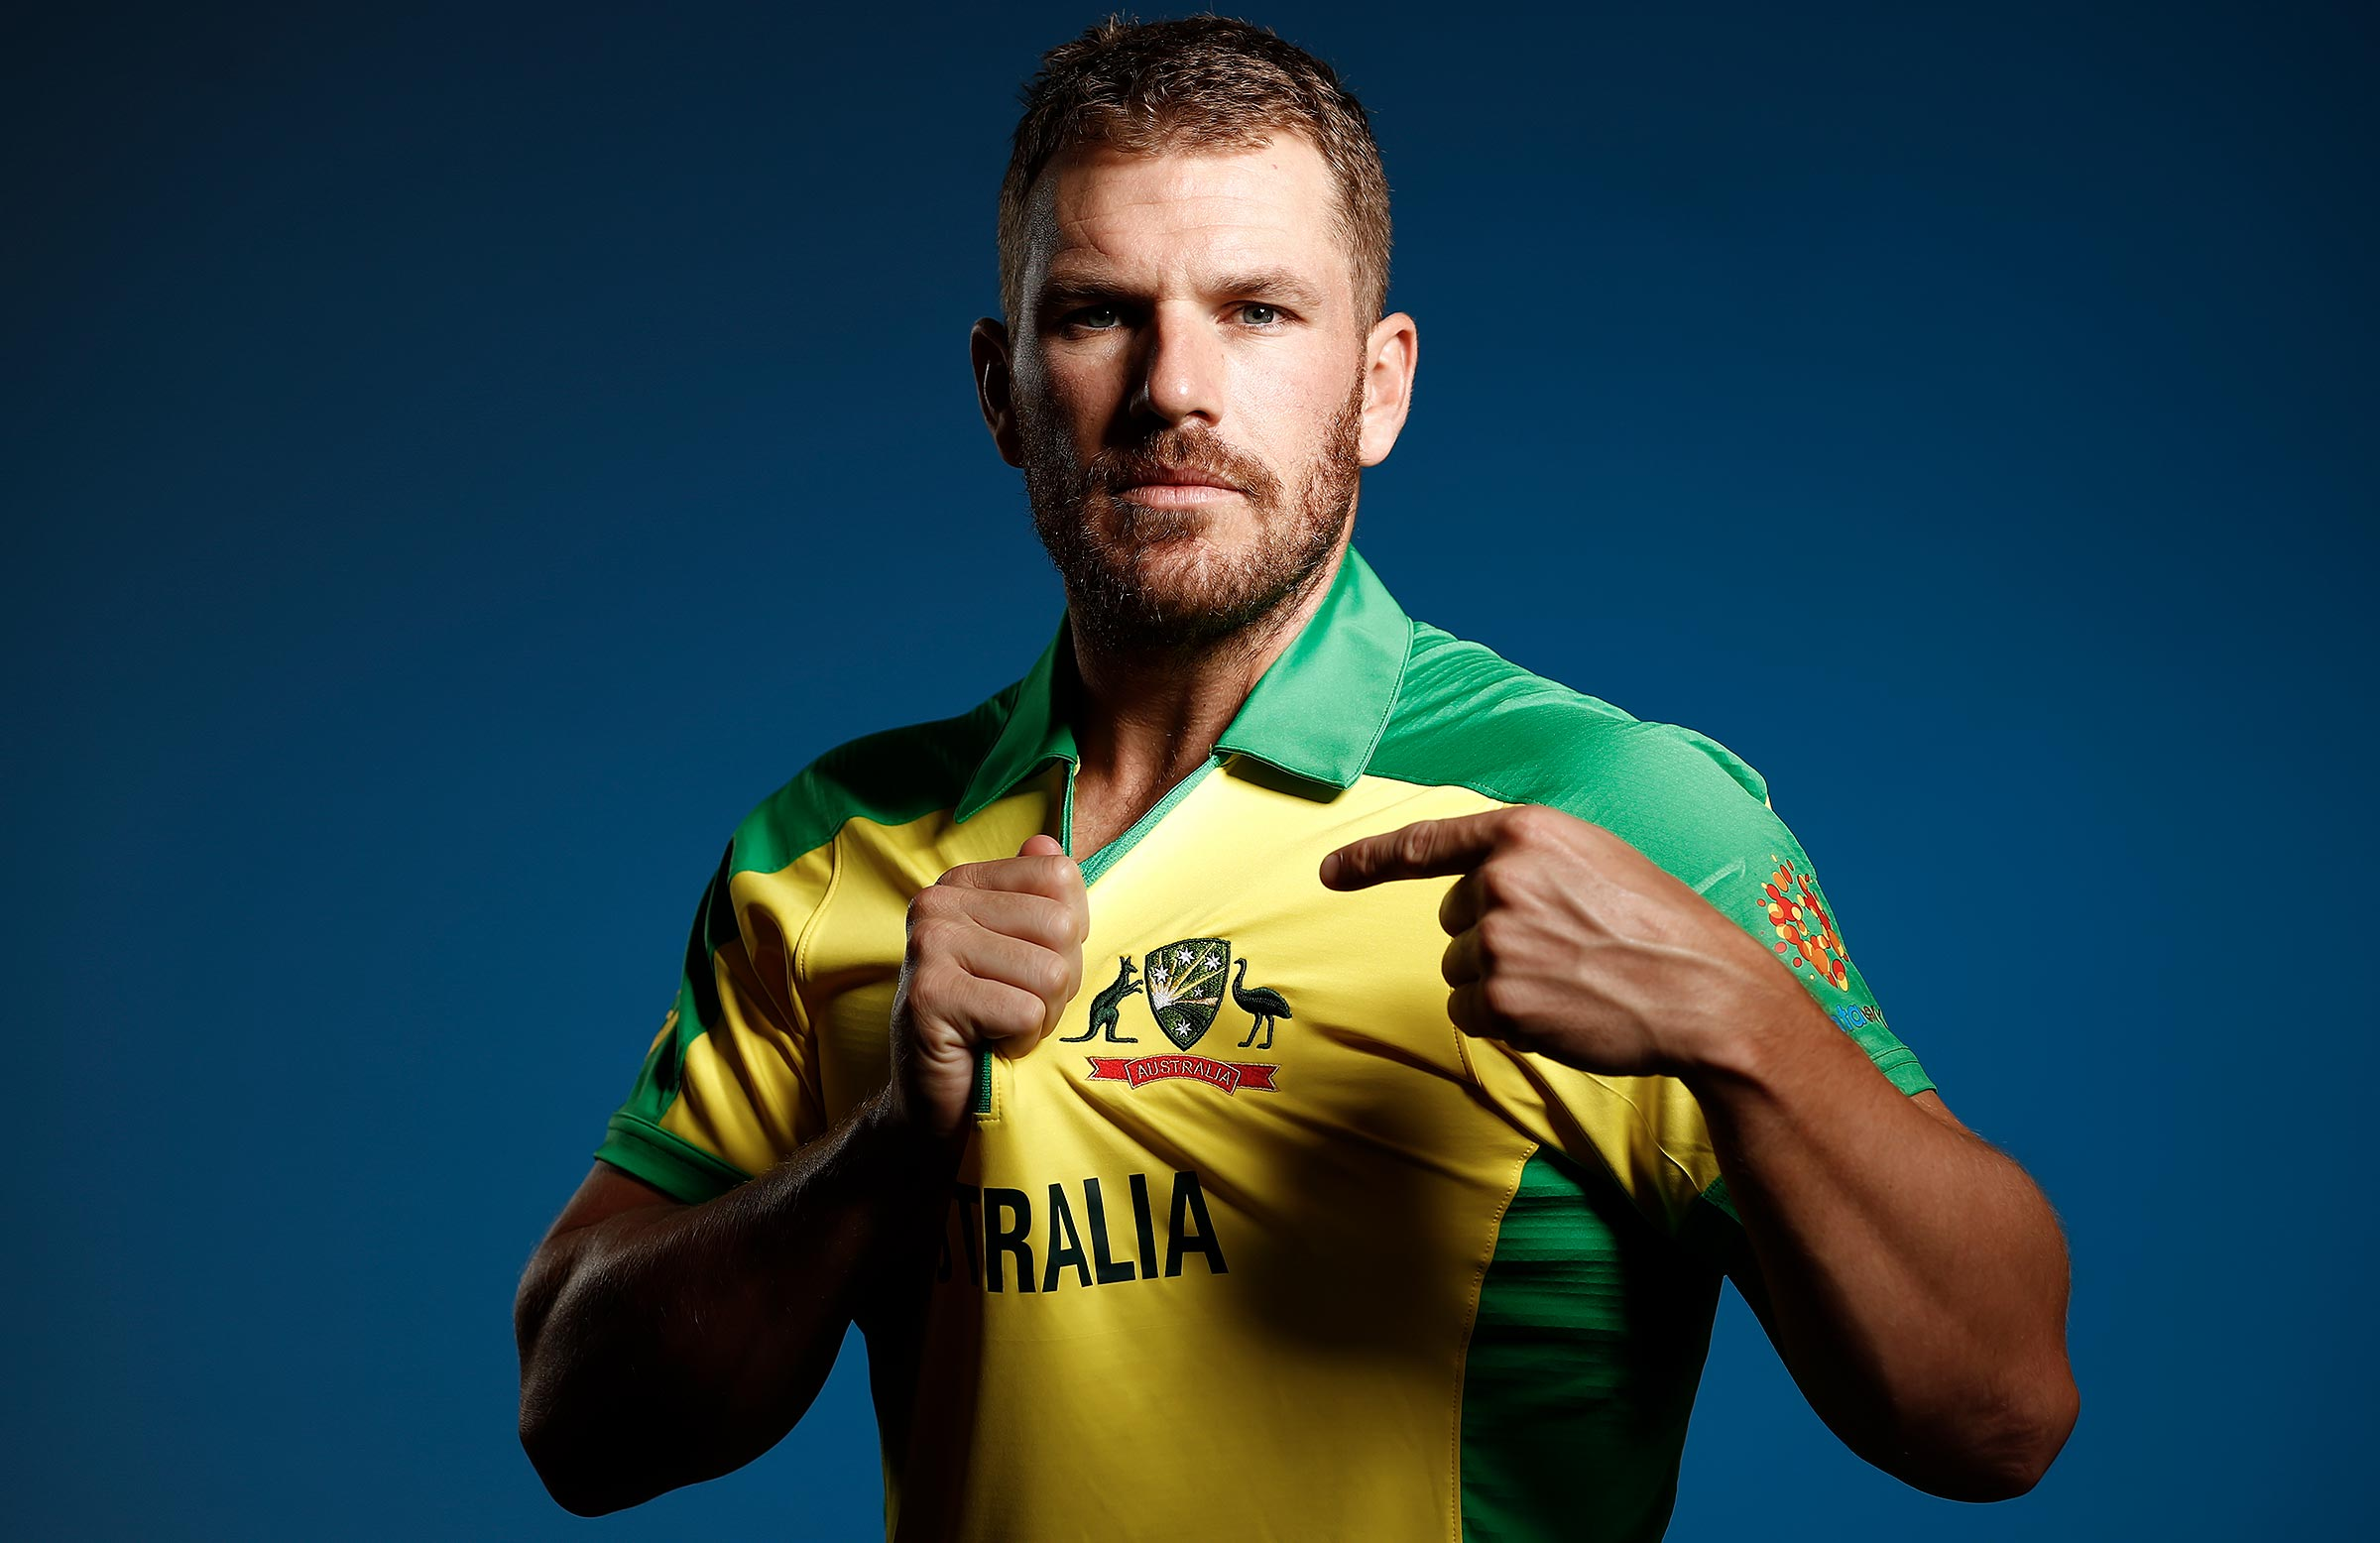 Finch will lead his country at this year's World Cup // Getty